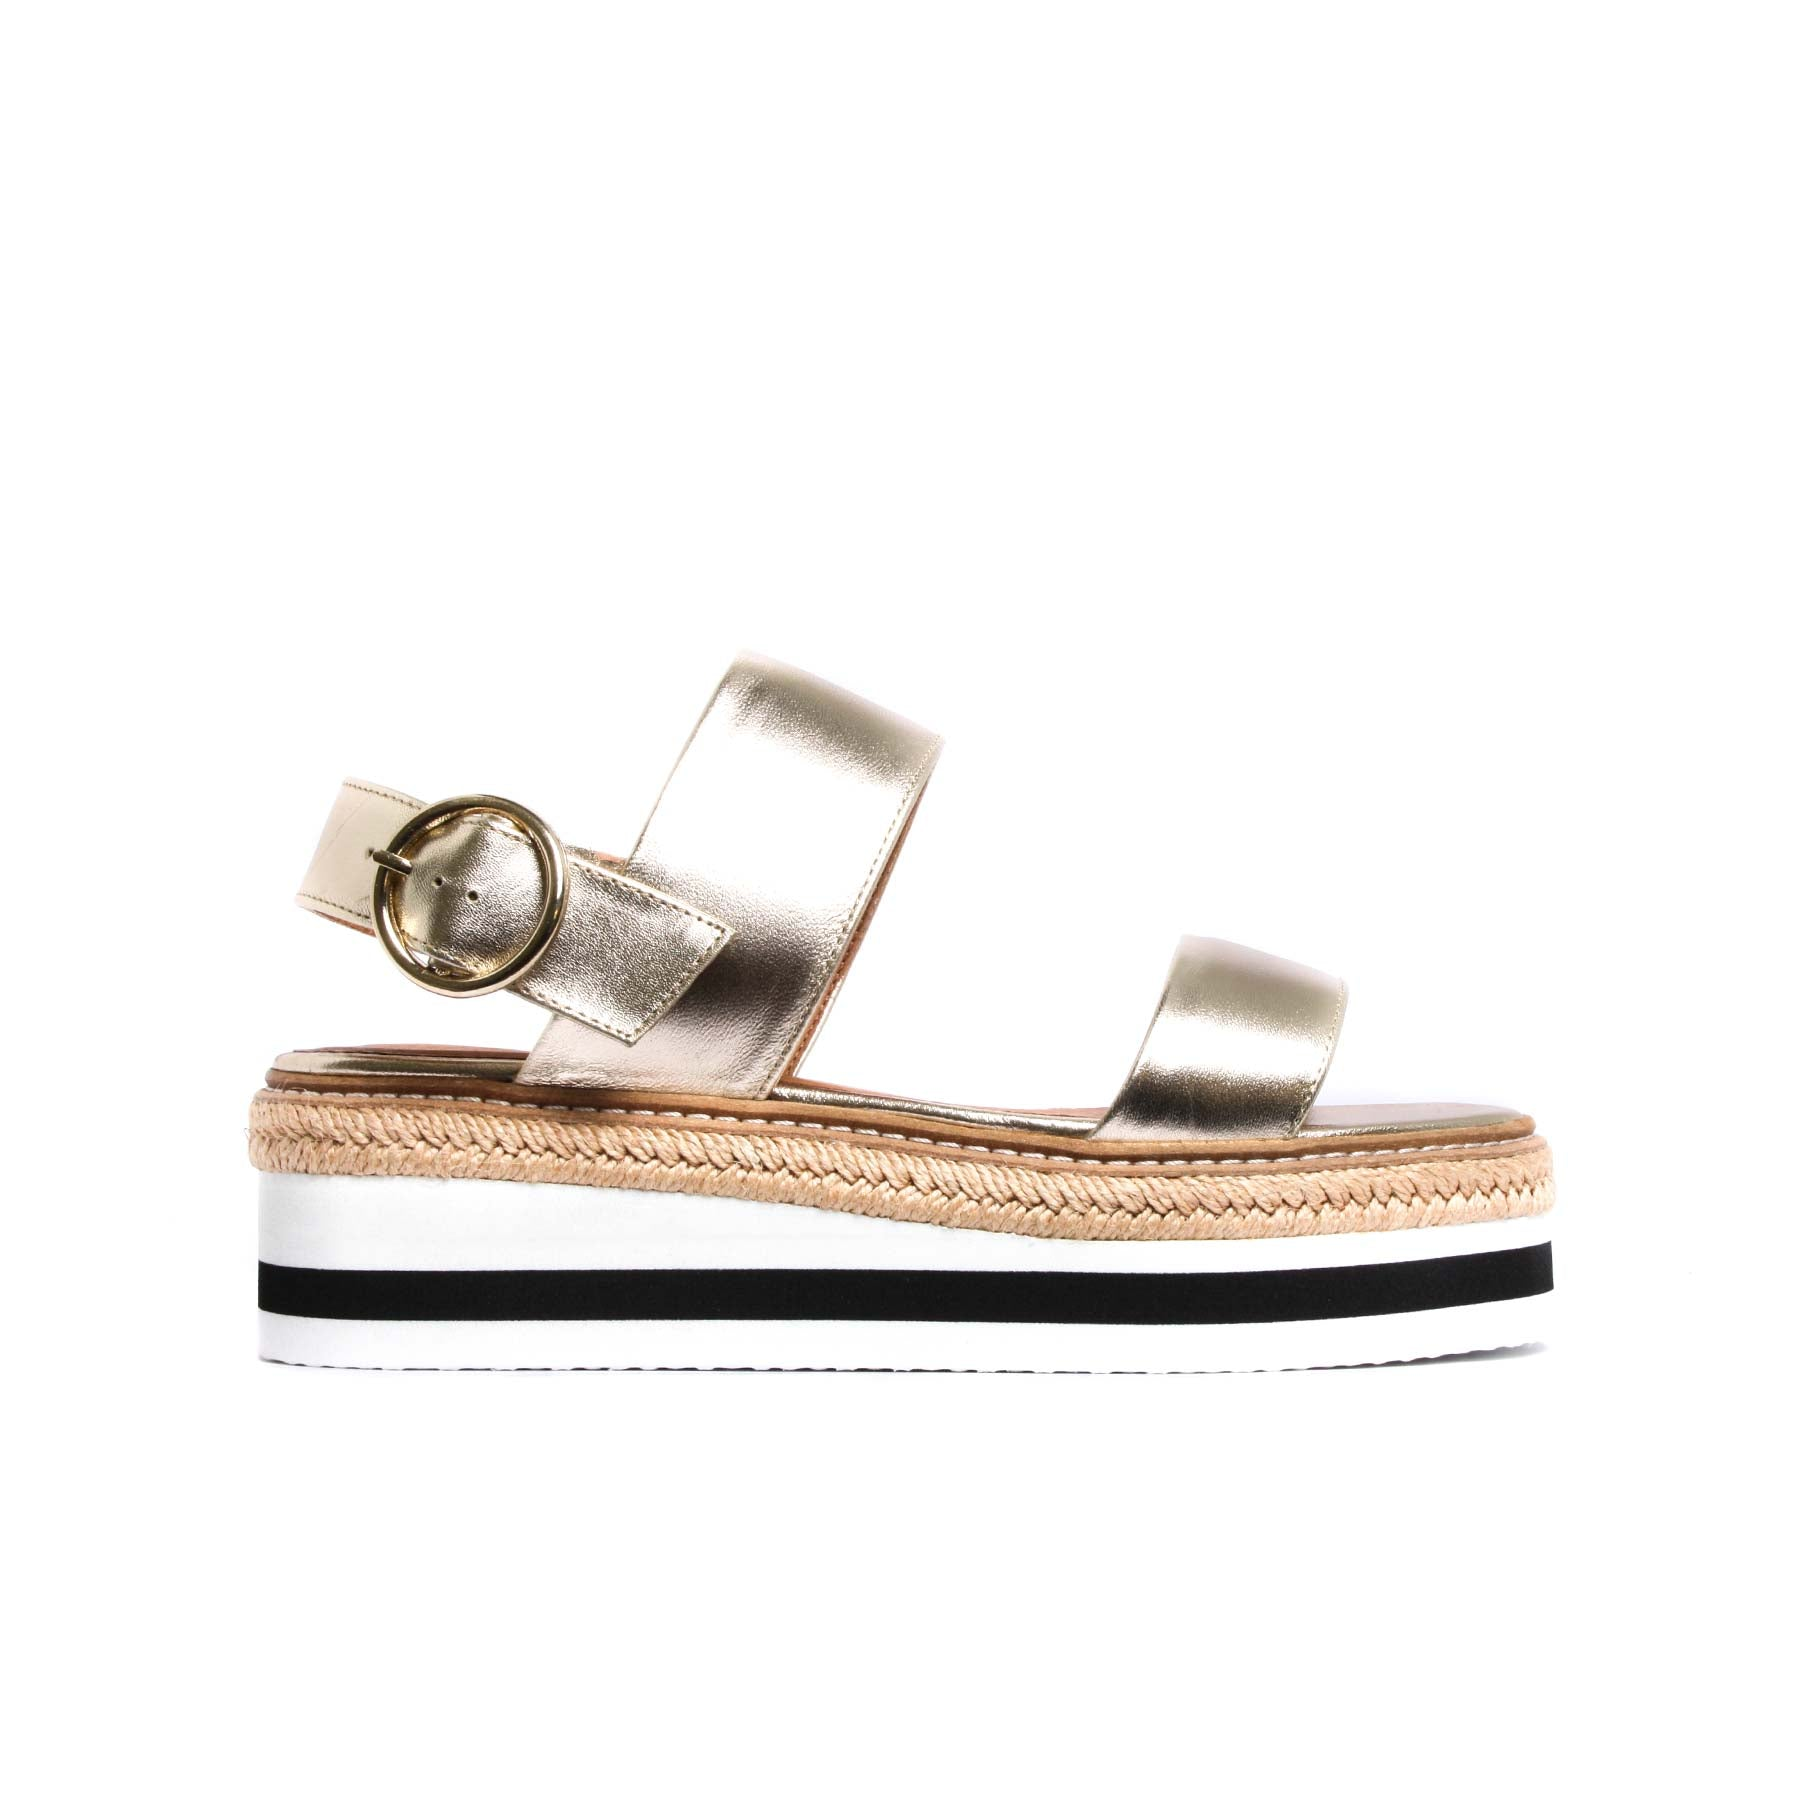 Flatforms, Cucasia Gold Leather - Lintervalle shoes for woman